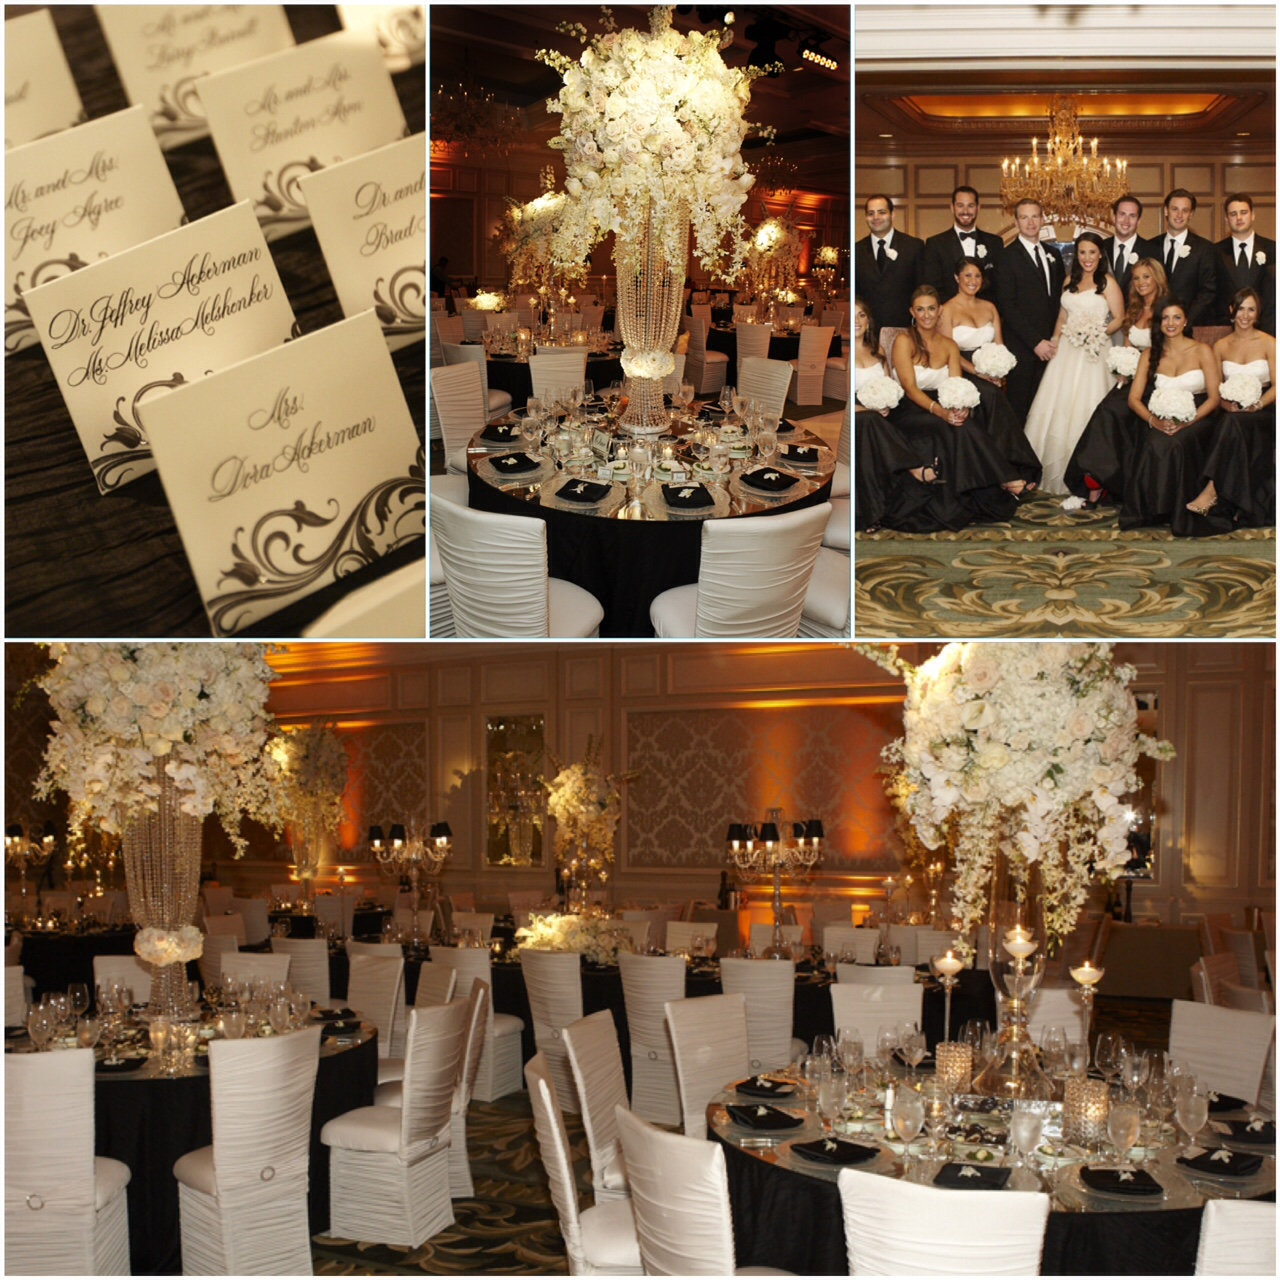 Black And White Wedding Ideas From Real Weddings Inside Weddings